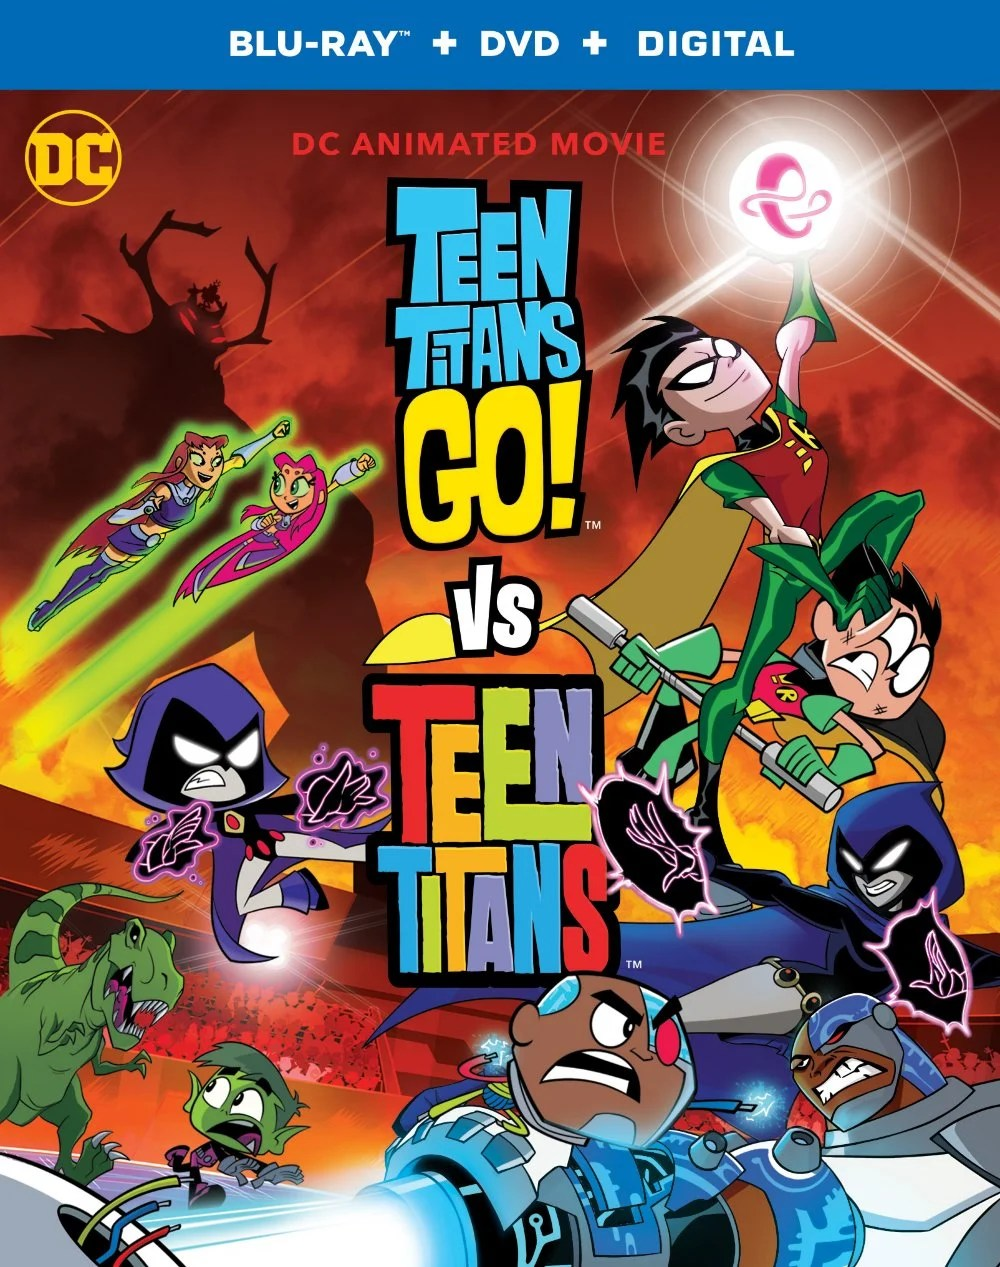 Teen Titans Go! VS Teen Titans DVD. Teen Titans Go! Vs. Teen Titans is now available to own on Digital, Blu-ray & DVD